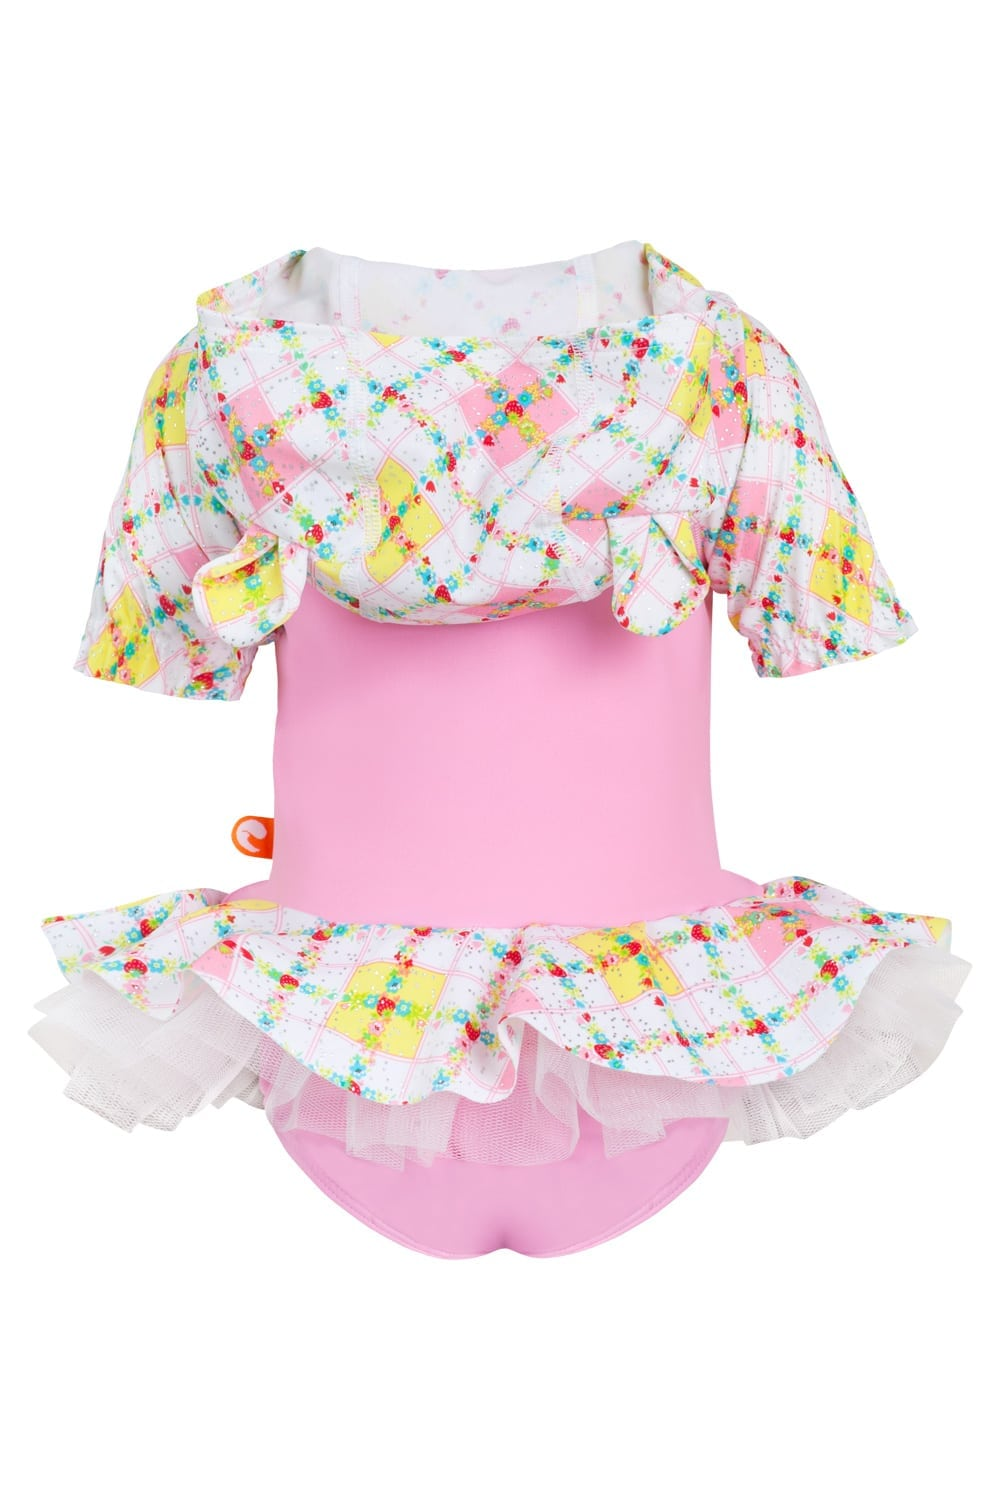 Strawberry Bliss Baby Hooded One Piece 50% OFF - Chachi's Bay - kids rashies - kids swimwear - kids swim shoes - round towels - beach towels